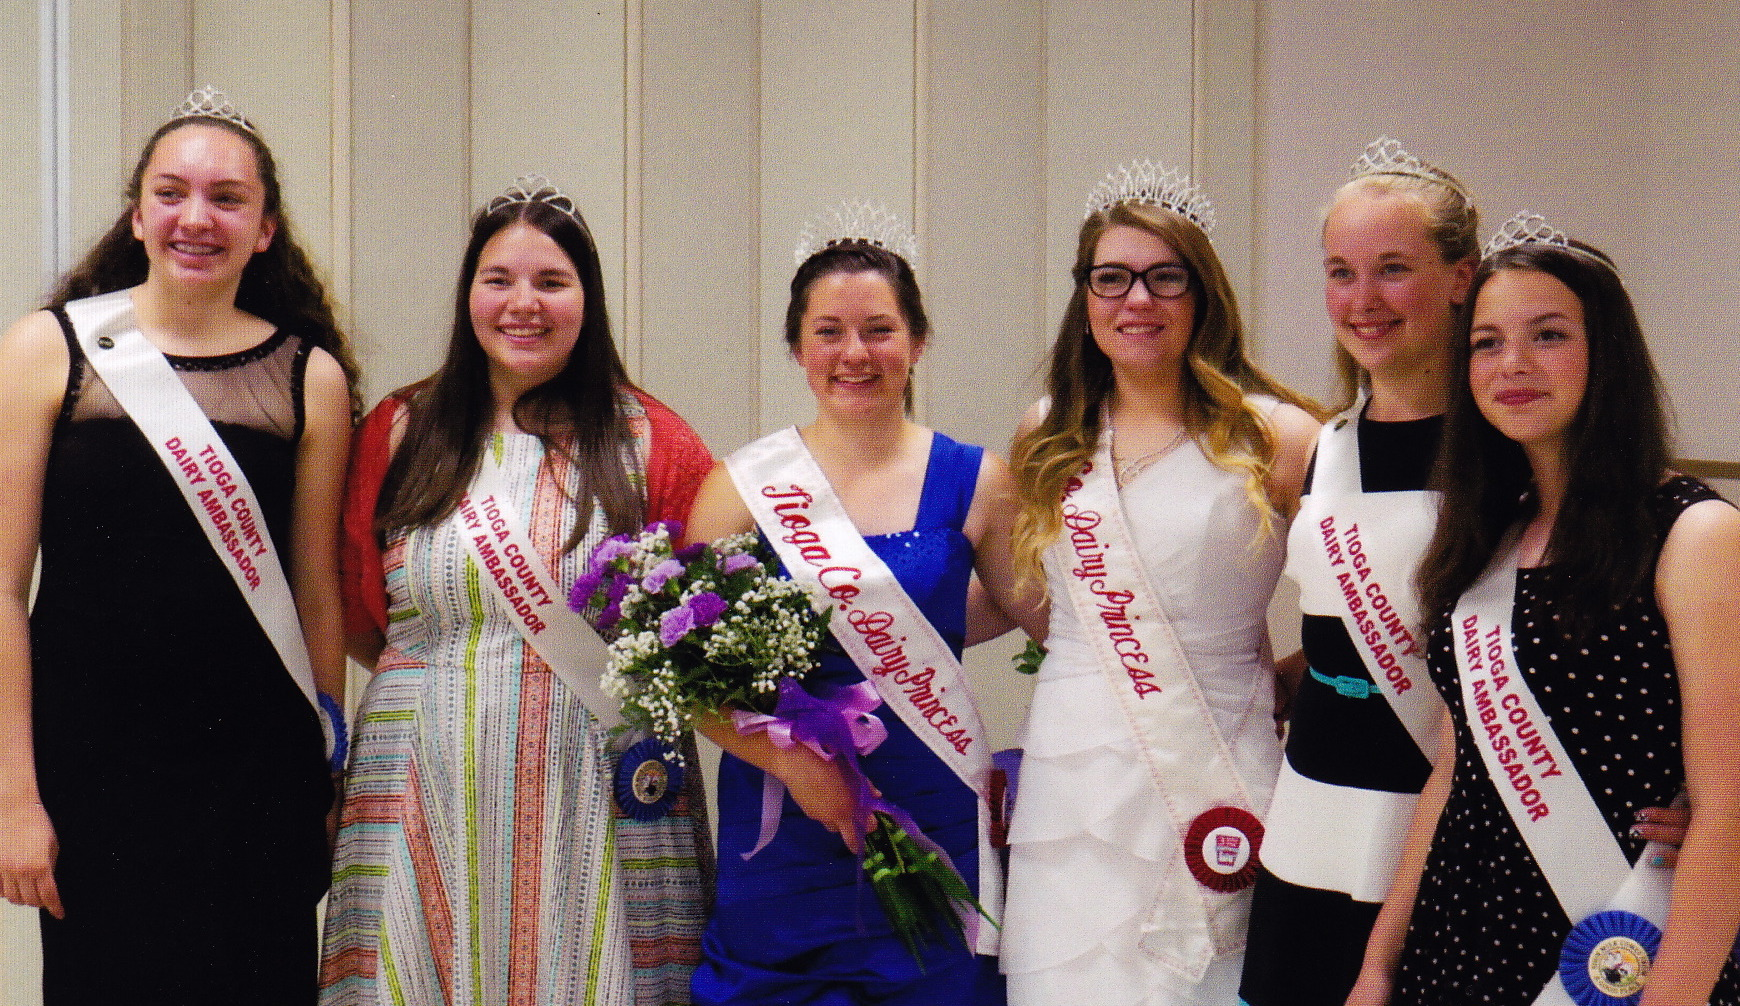 Dairy princess crowned in tioga county owego pennysaver for Emily addison nyc